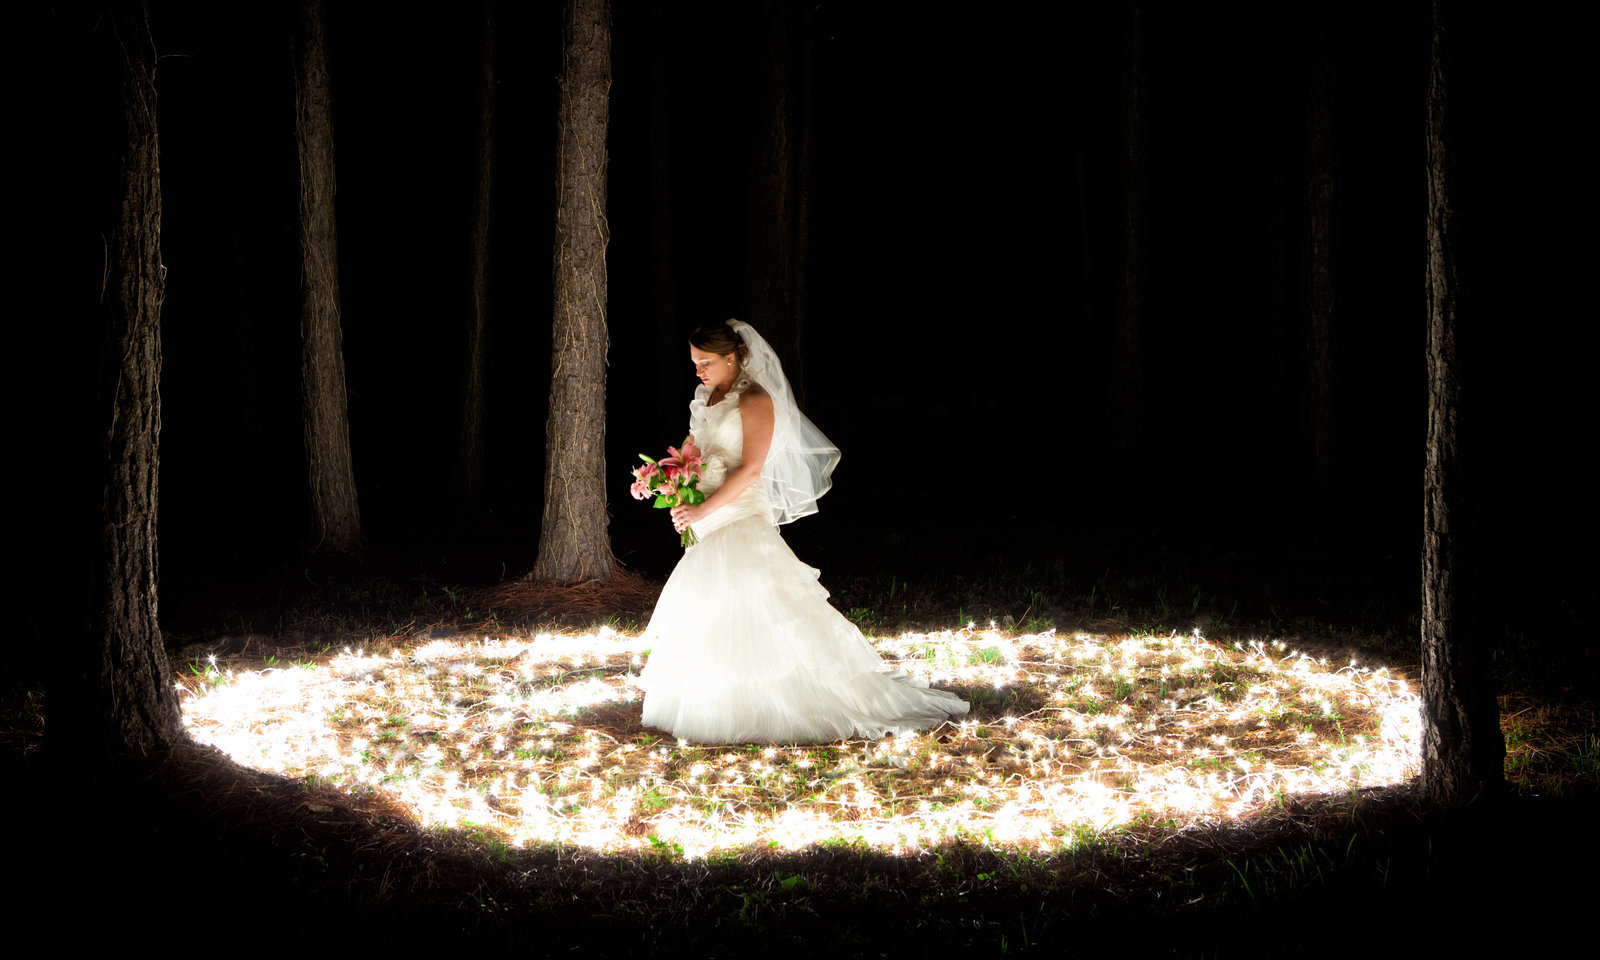 Lauren Eddins epic bridal portrait in Coden, Alabama.